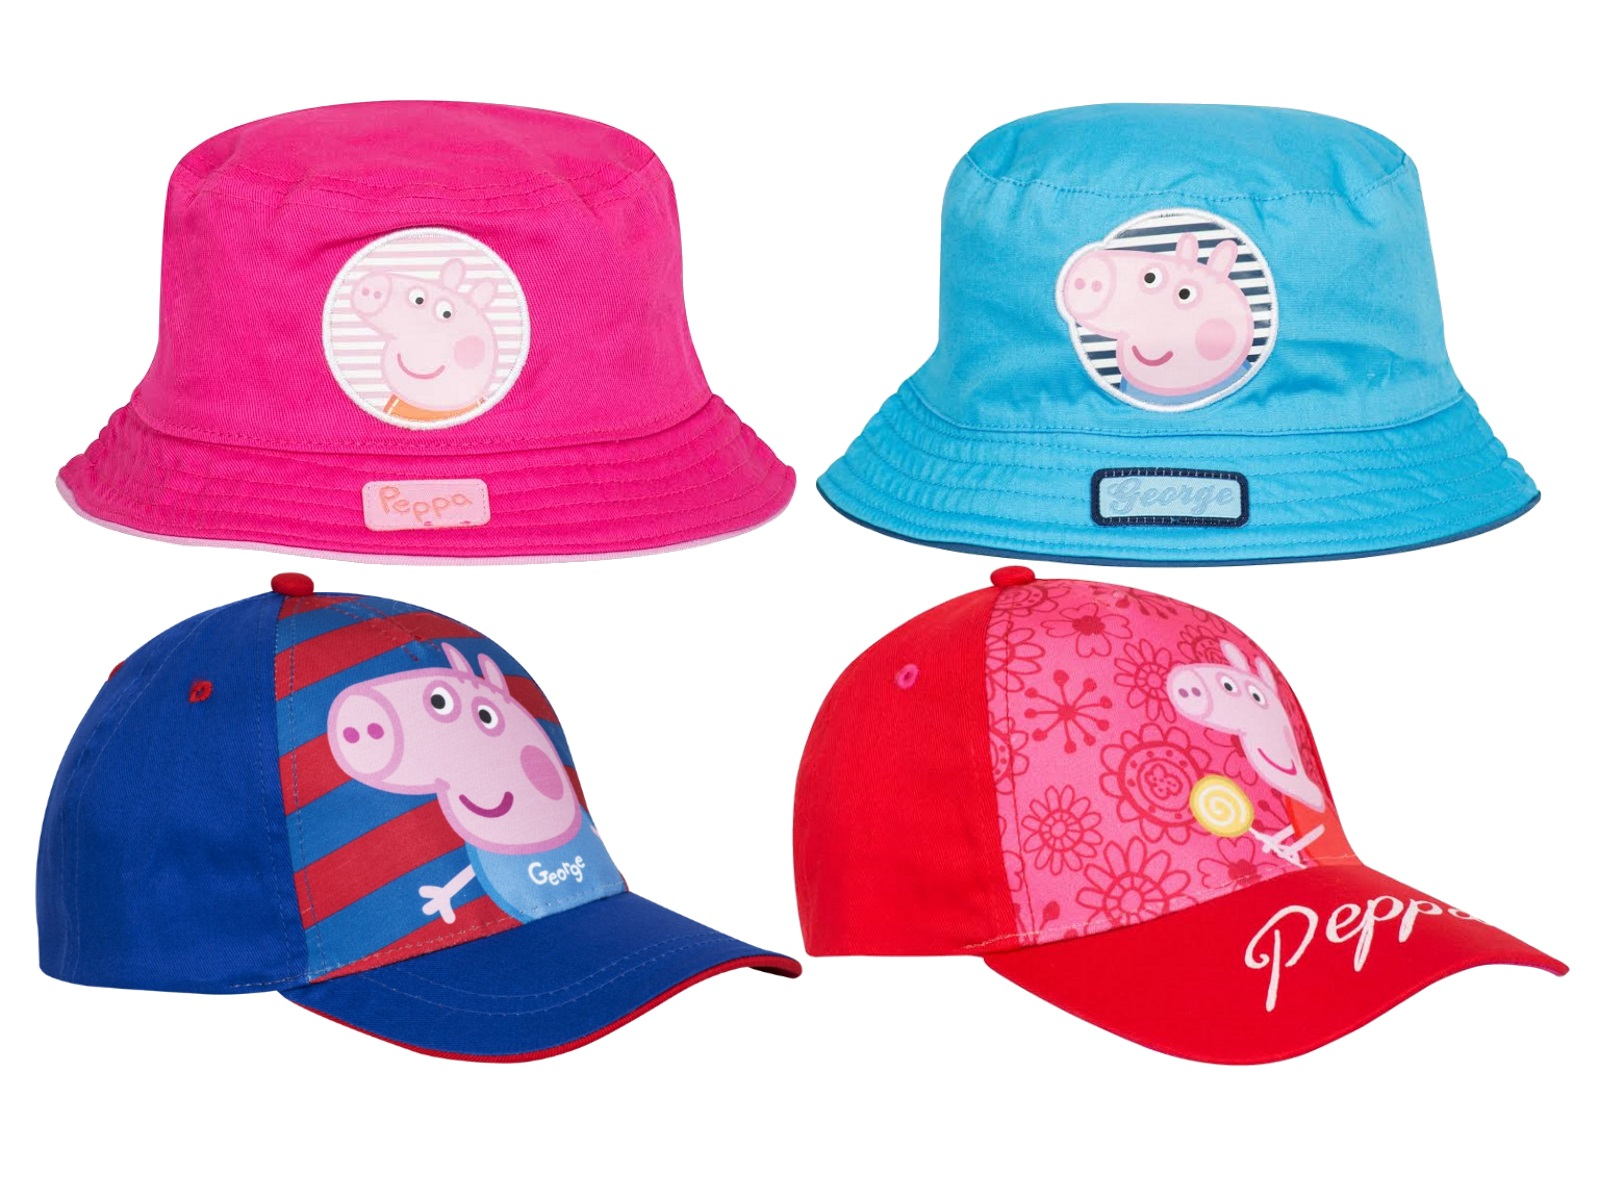 Whether your kids like to have fun in the sun or frolic and play in the rain or snow, we have hats that get the job done. With nifty features like maximum UPF 50+ sun protection and adjustable sizing, as well as styles that are stain and water resistant, our kids' hats come in fun colors and high-quality fabrics that look just as good as they.